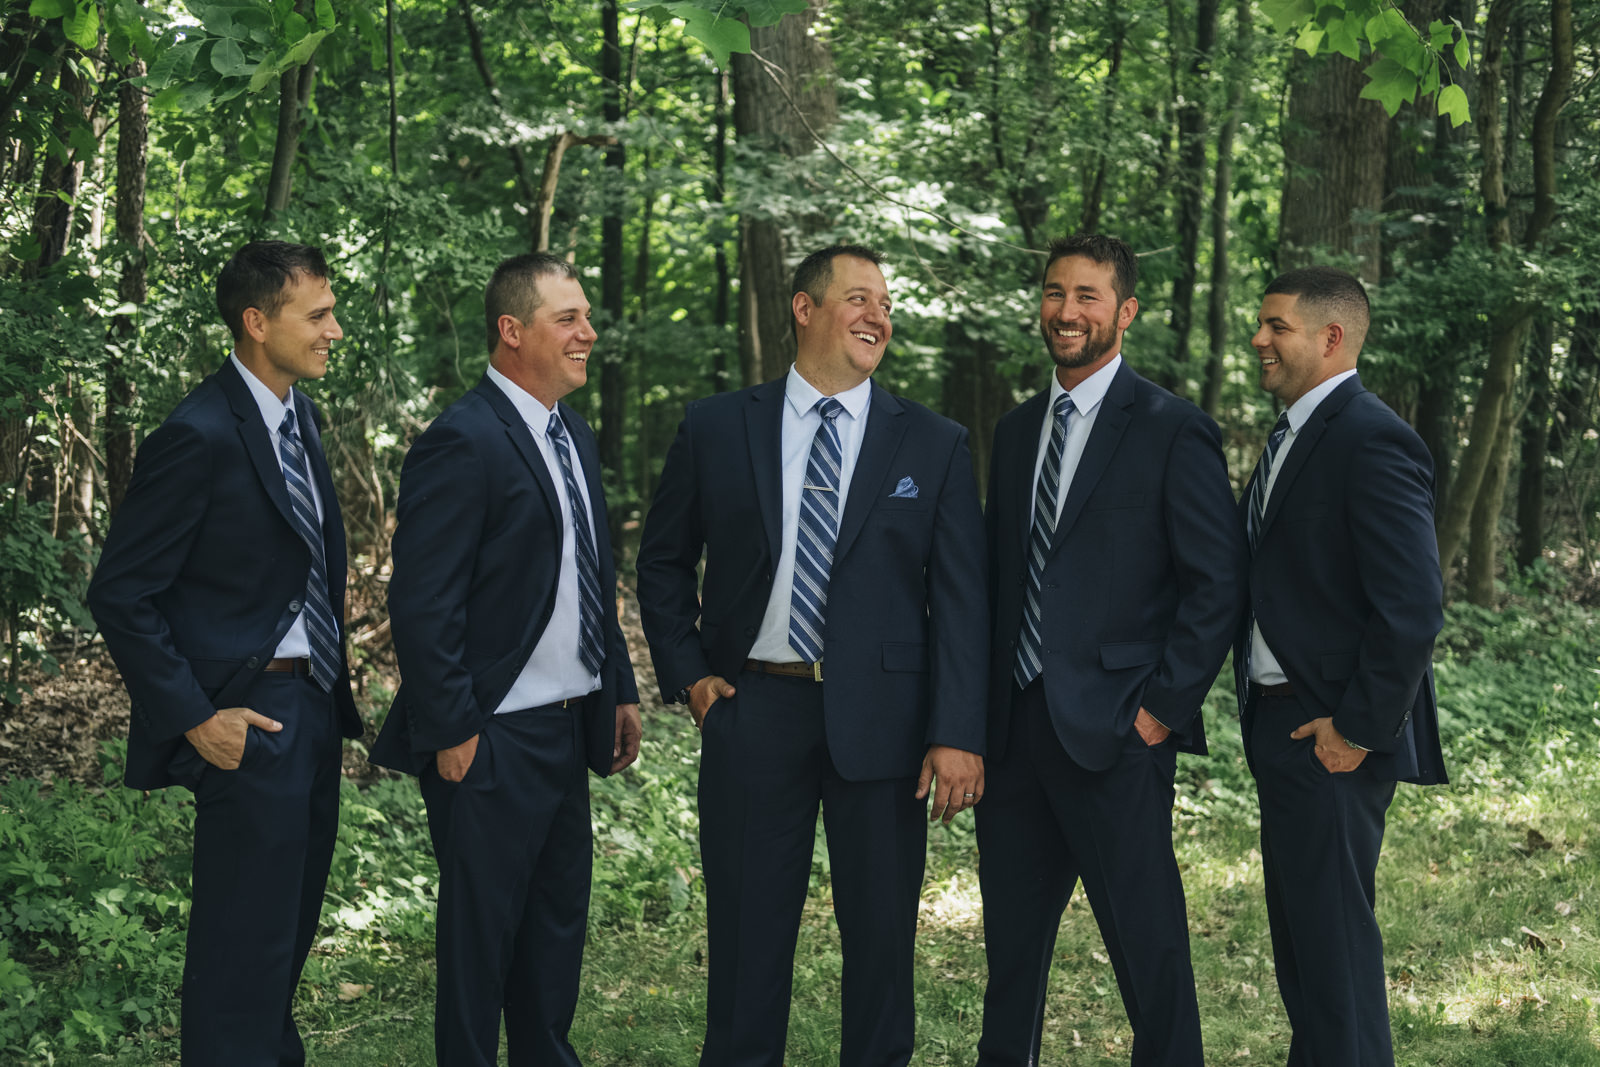 Groomsmen laughing with the groom before the wedding ceremony at Stranahan Theatre.